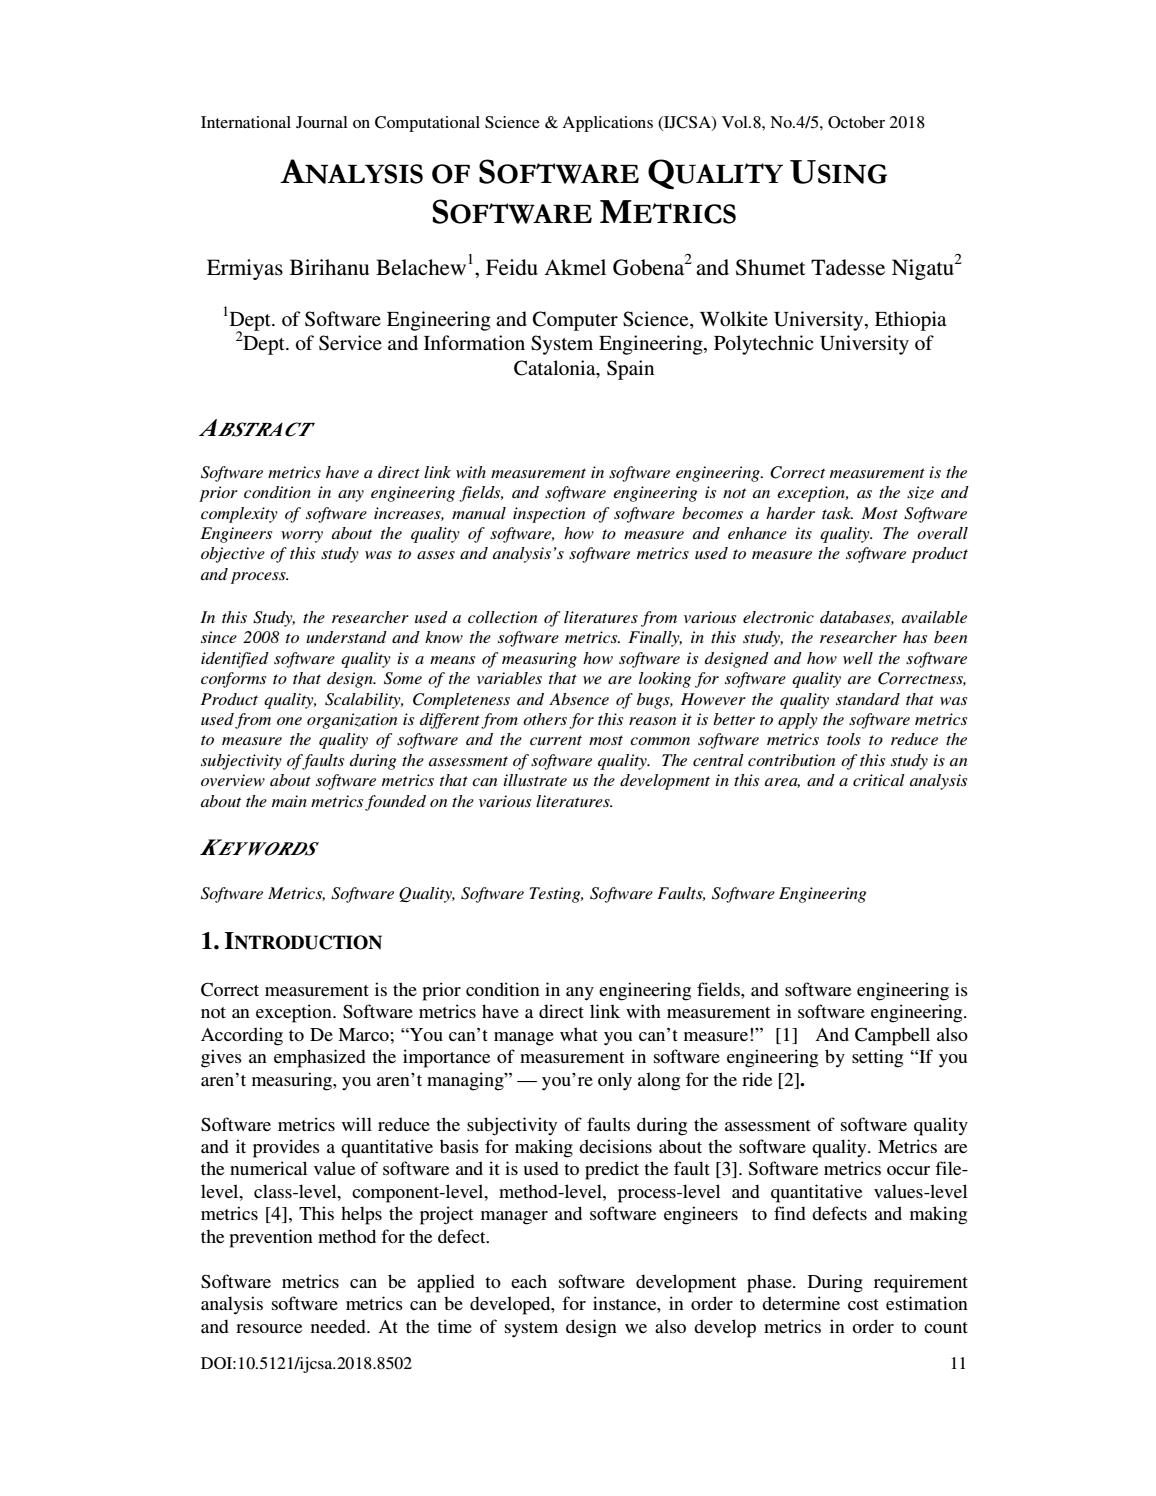 Analysis Of Software Quality Using Software Metrics By Ijcsajournal Issuu